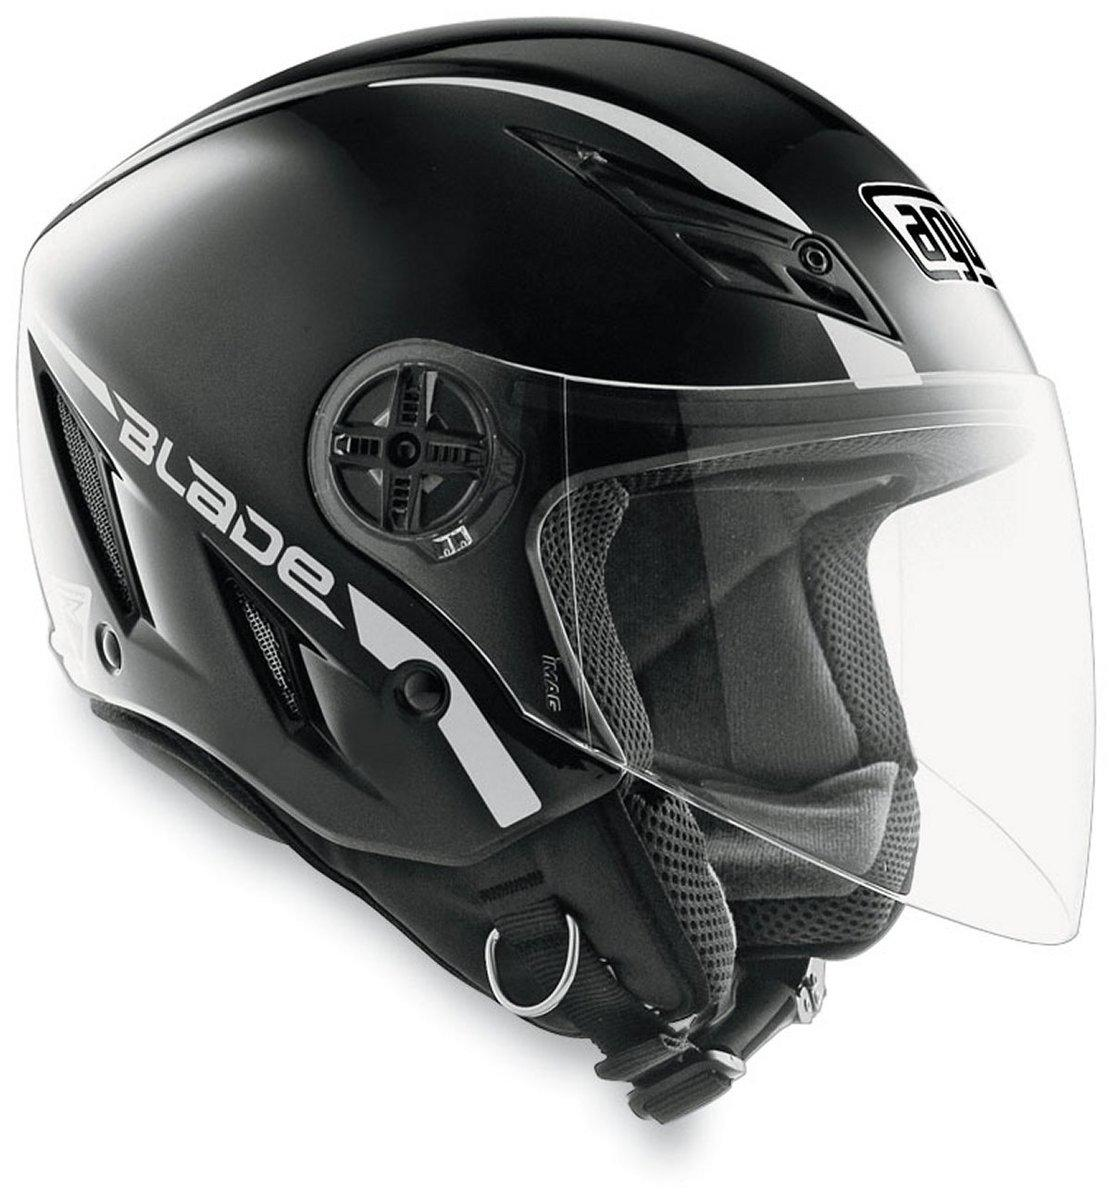 Blade Helmet Solid Colors